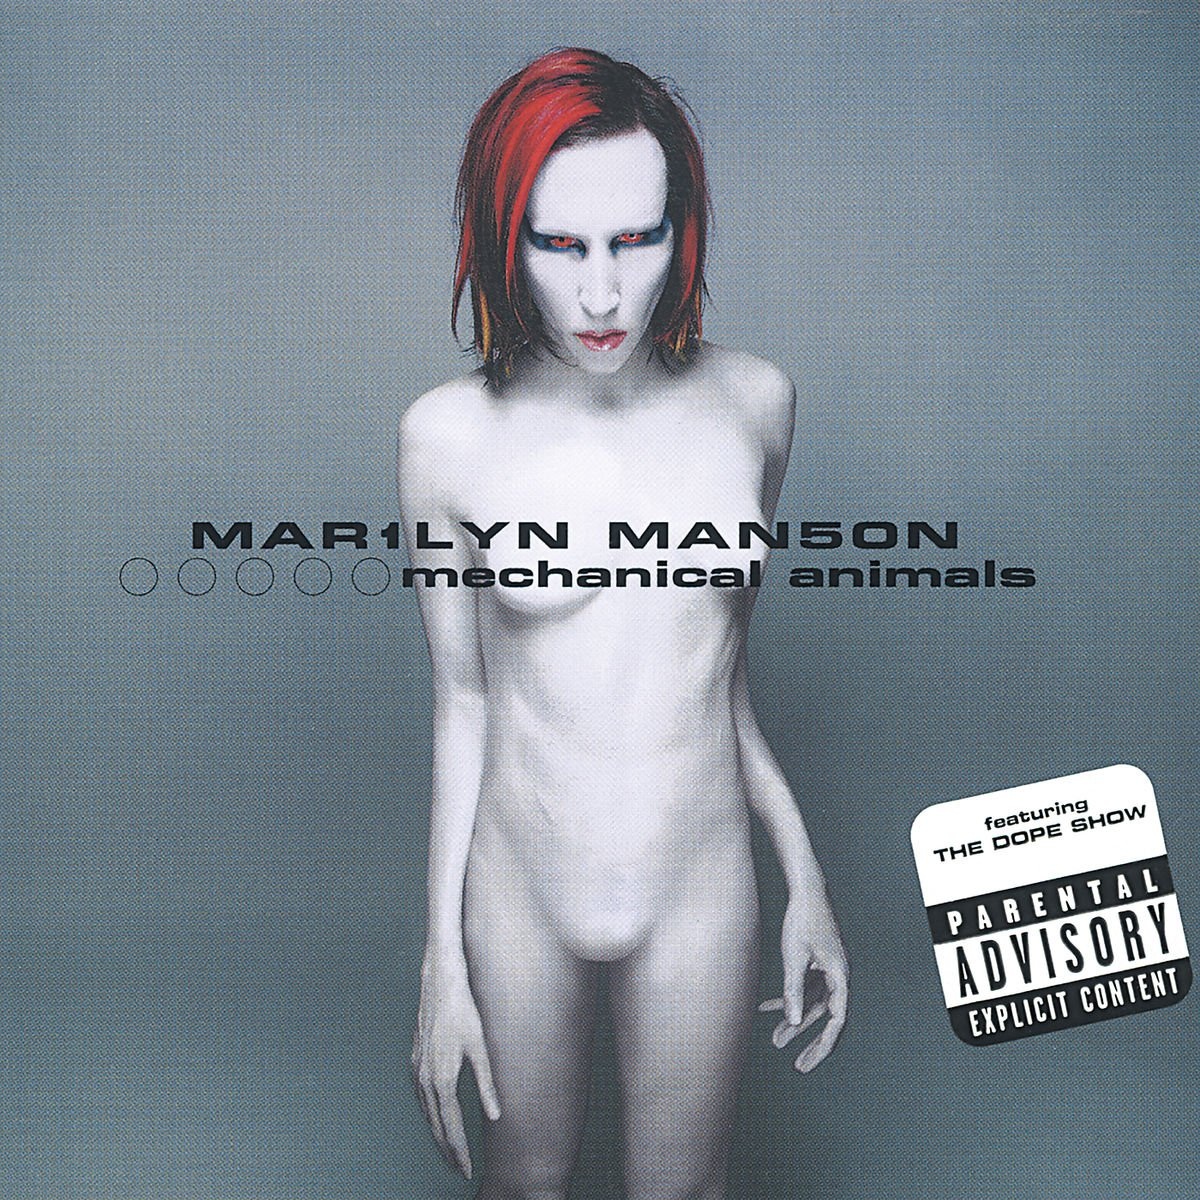 CD : Marilyn Manson - Mechanical Animals [Explicit Content]